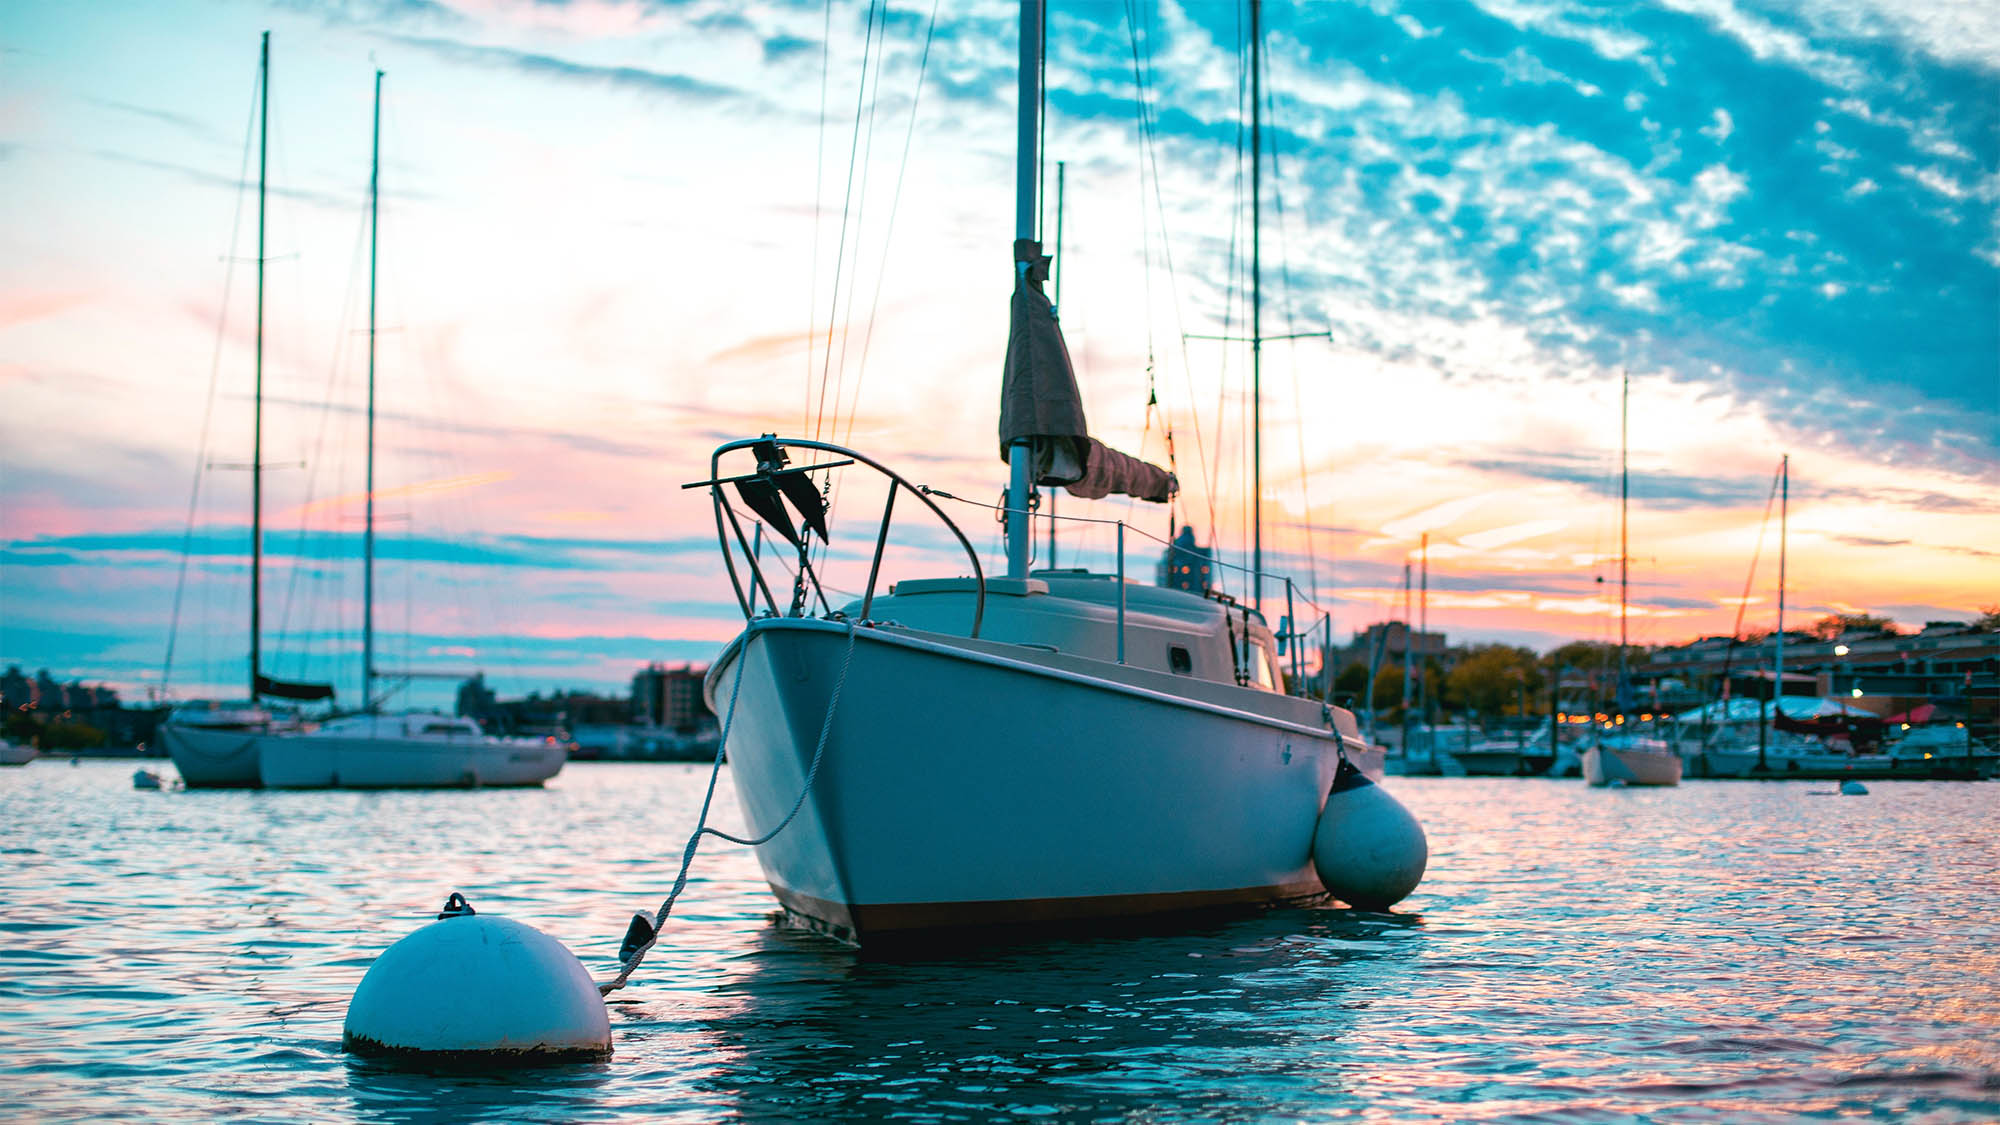 Docket boat beneath pink white and blue sunset sky